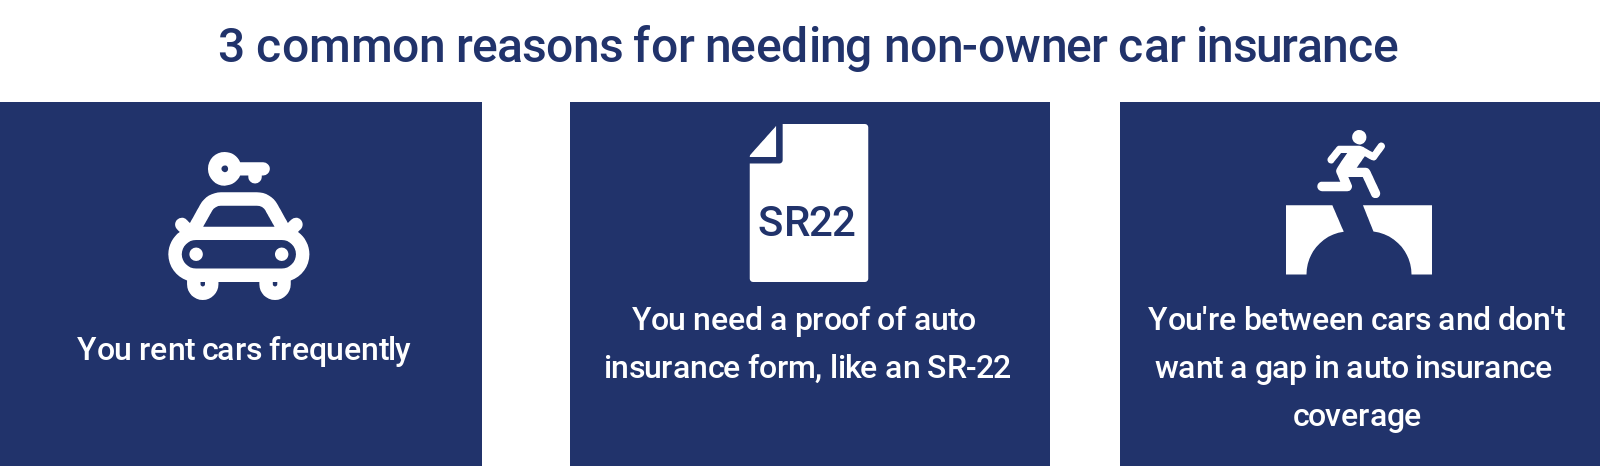 3 common reasons you might need non-owner car insurance